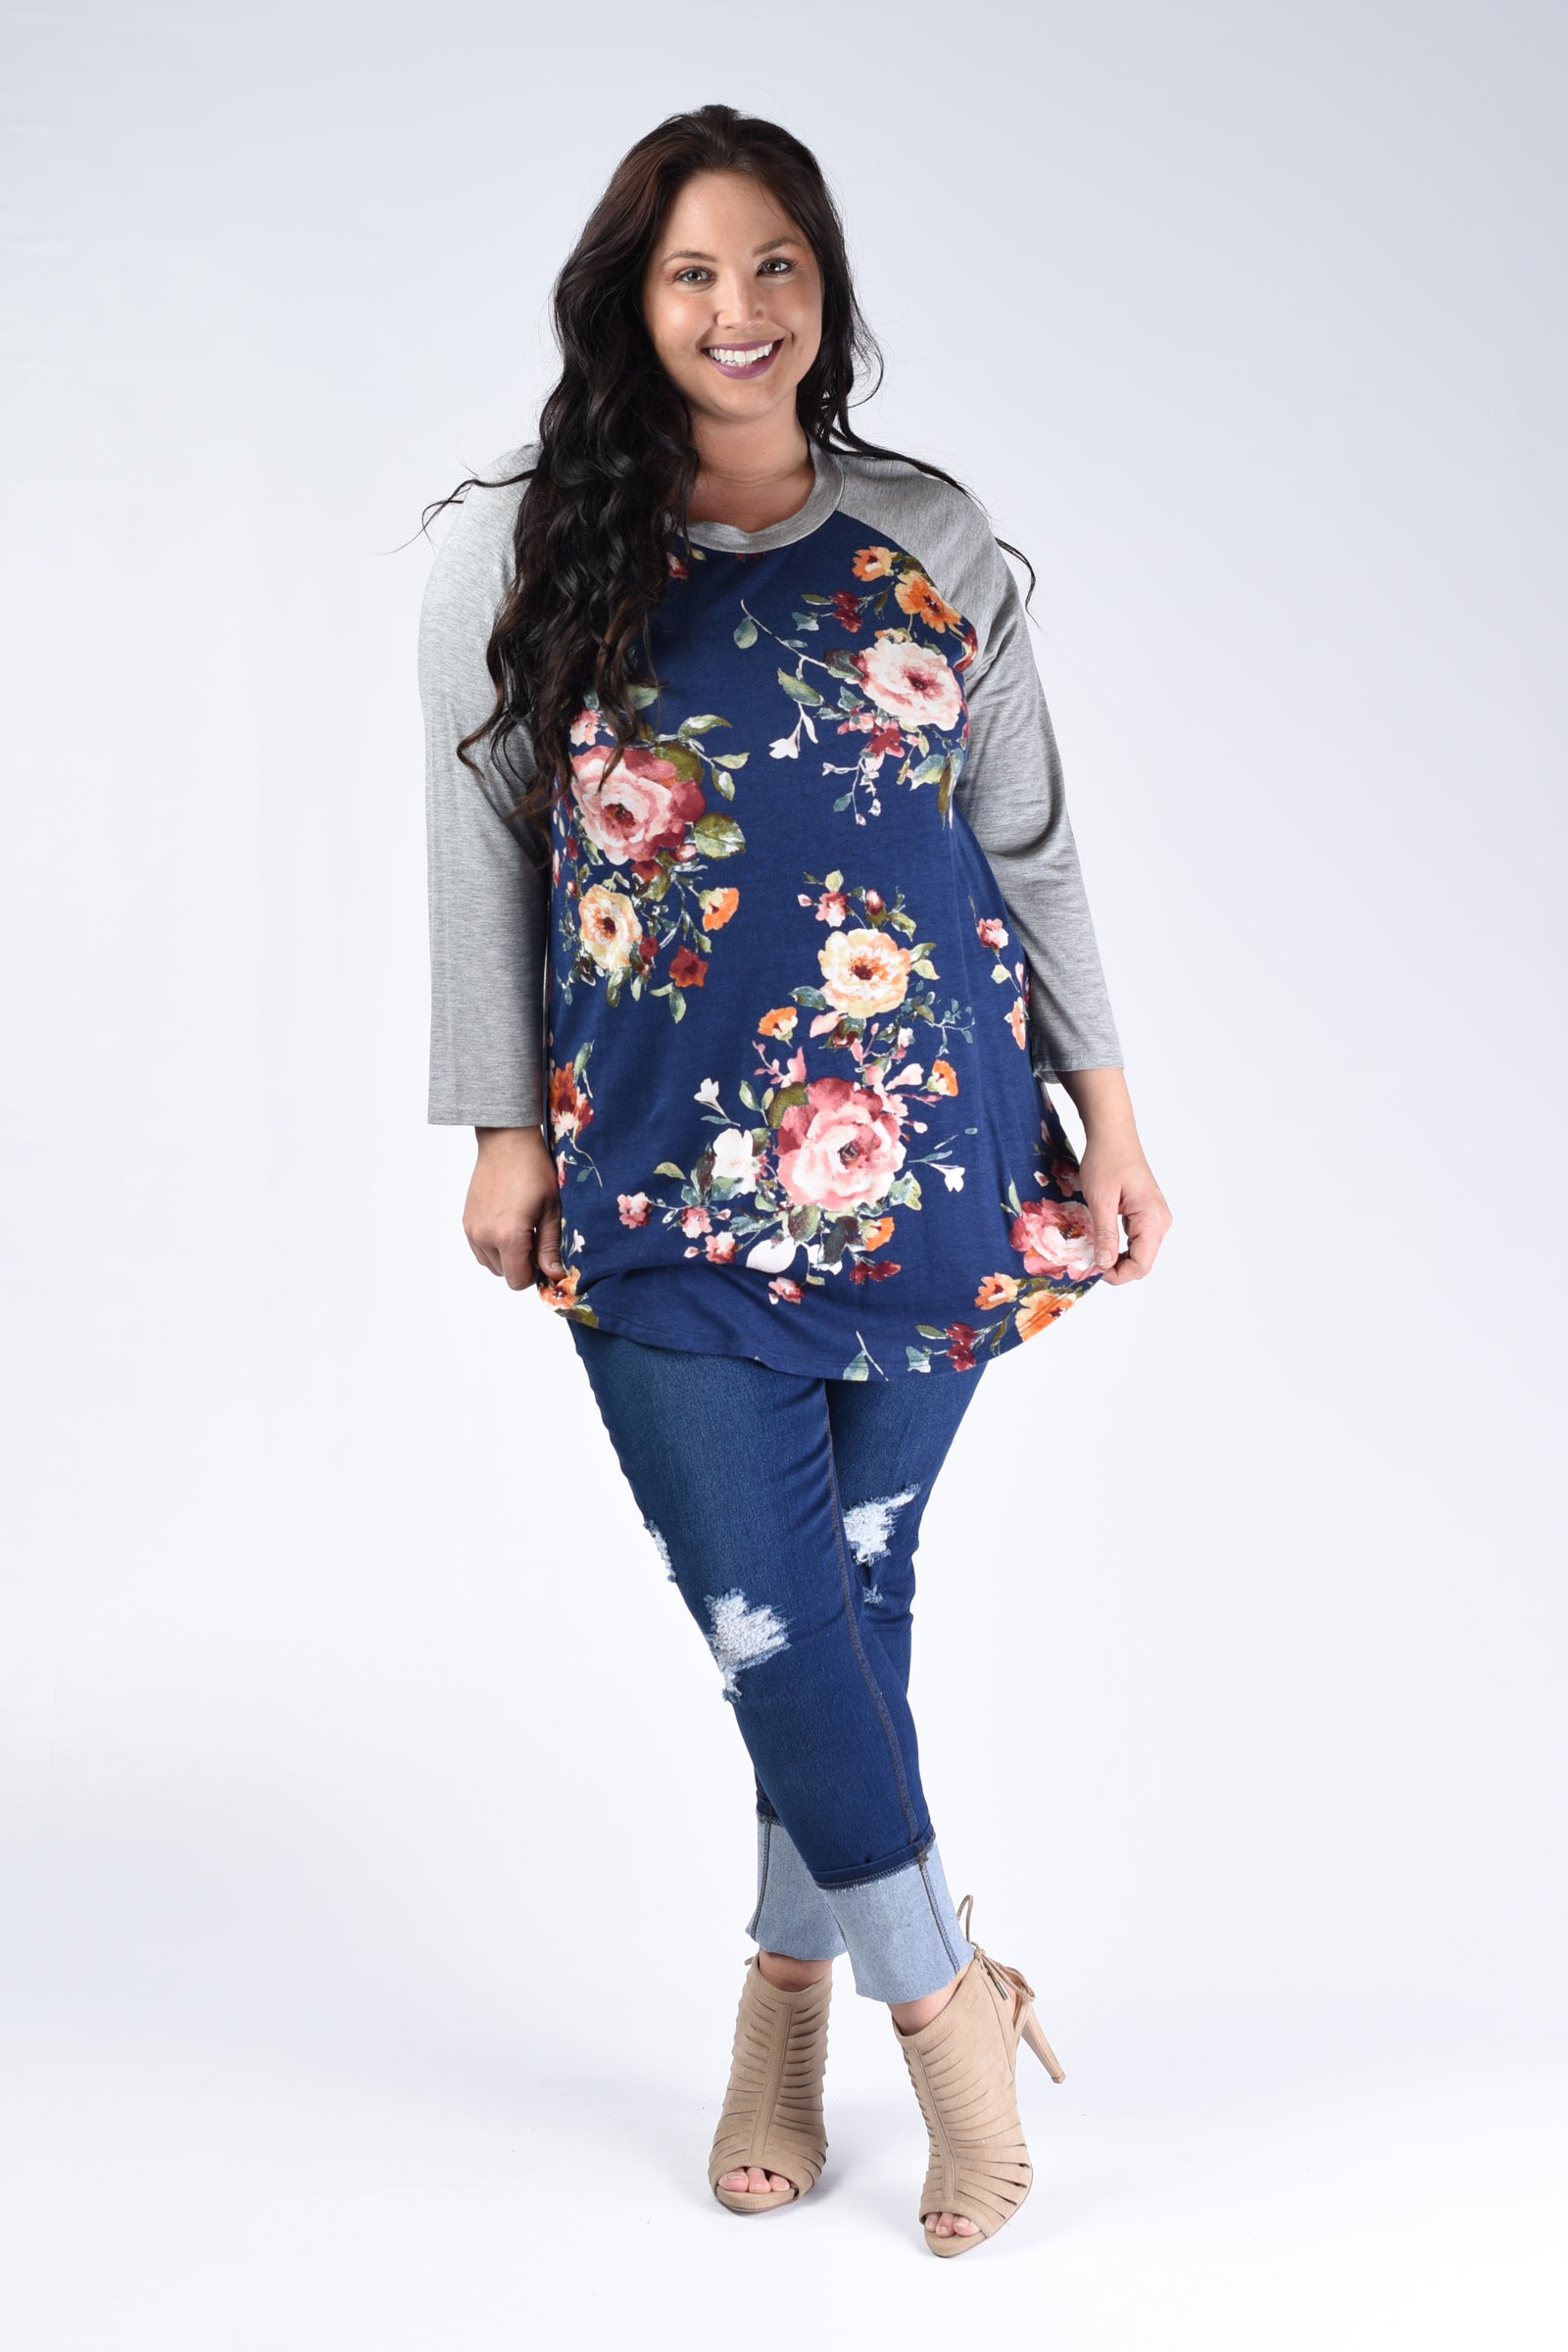 Navy & Grey Floral Solid Sleeve Top - www.mycurvystore.com - Curvy Boutique - Plus Size